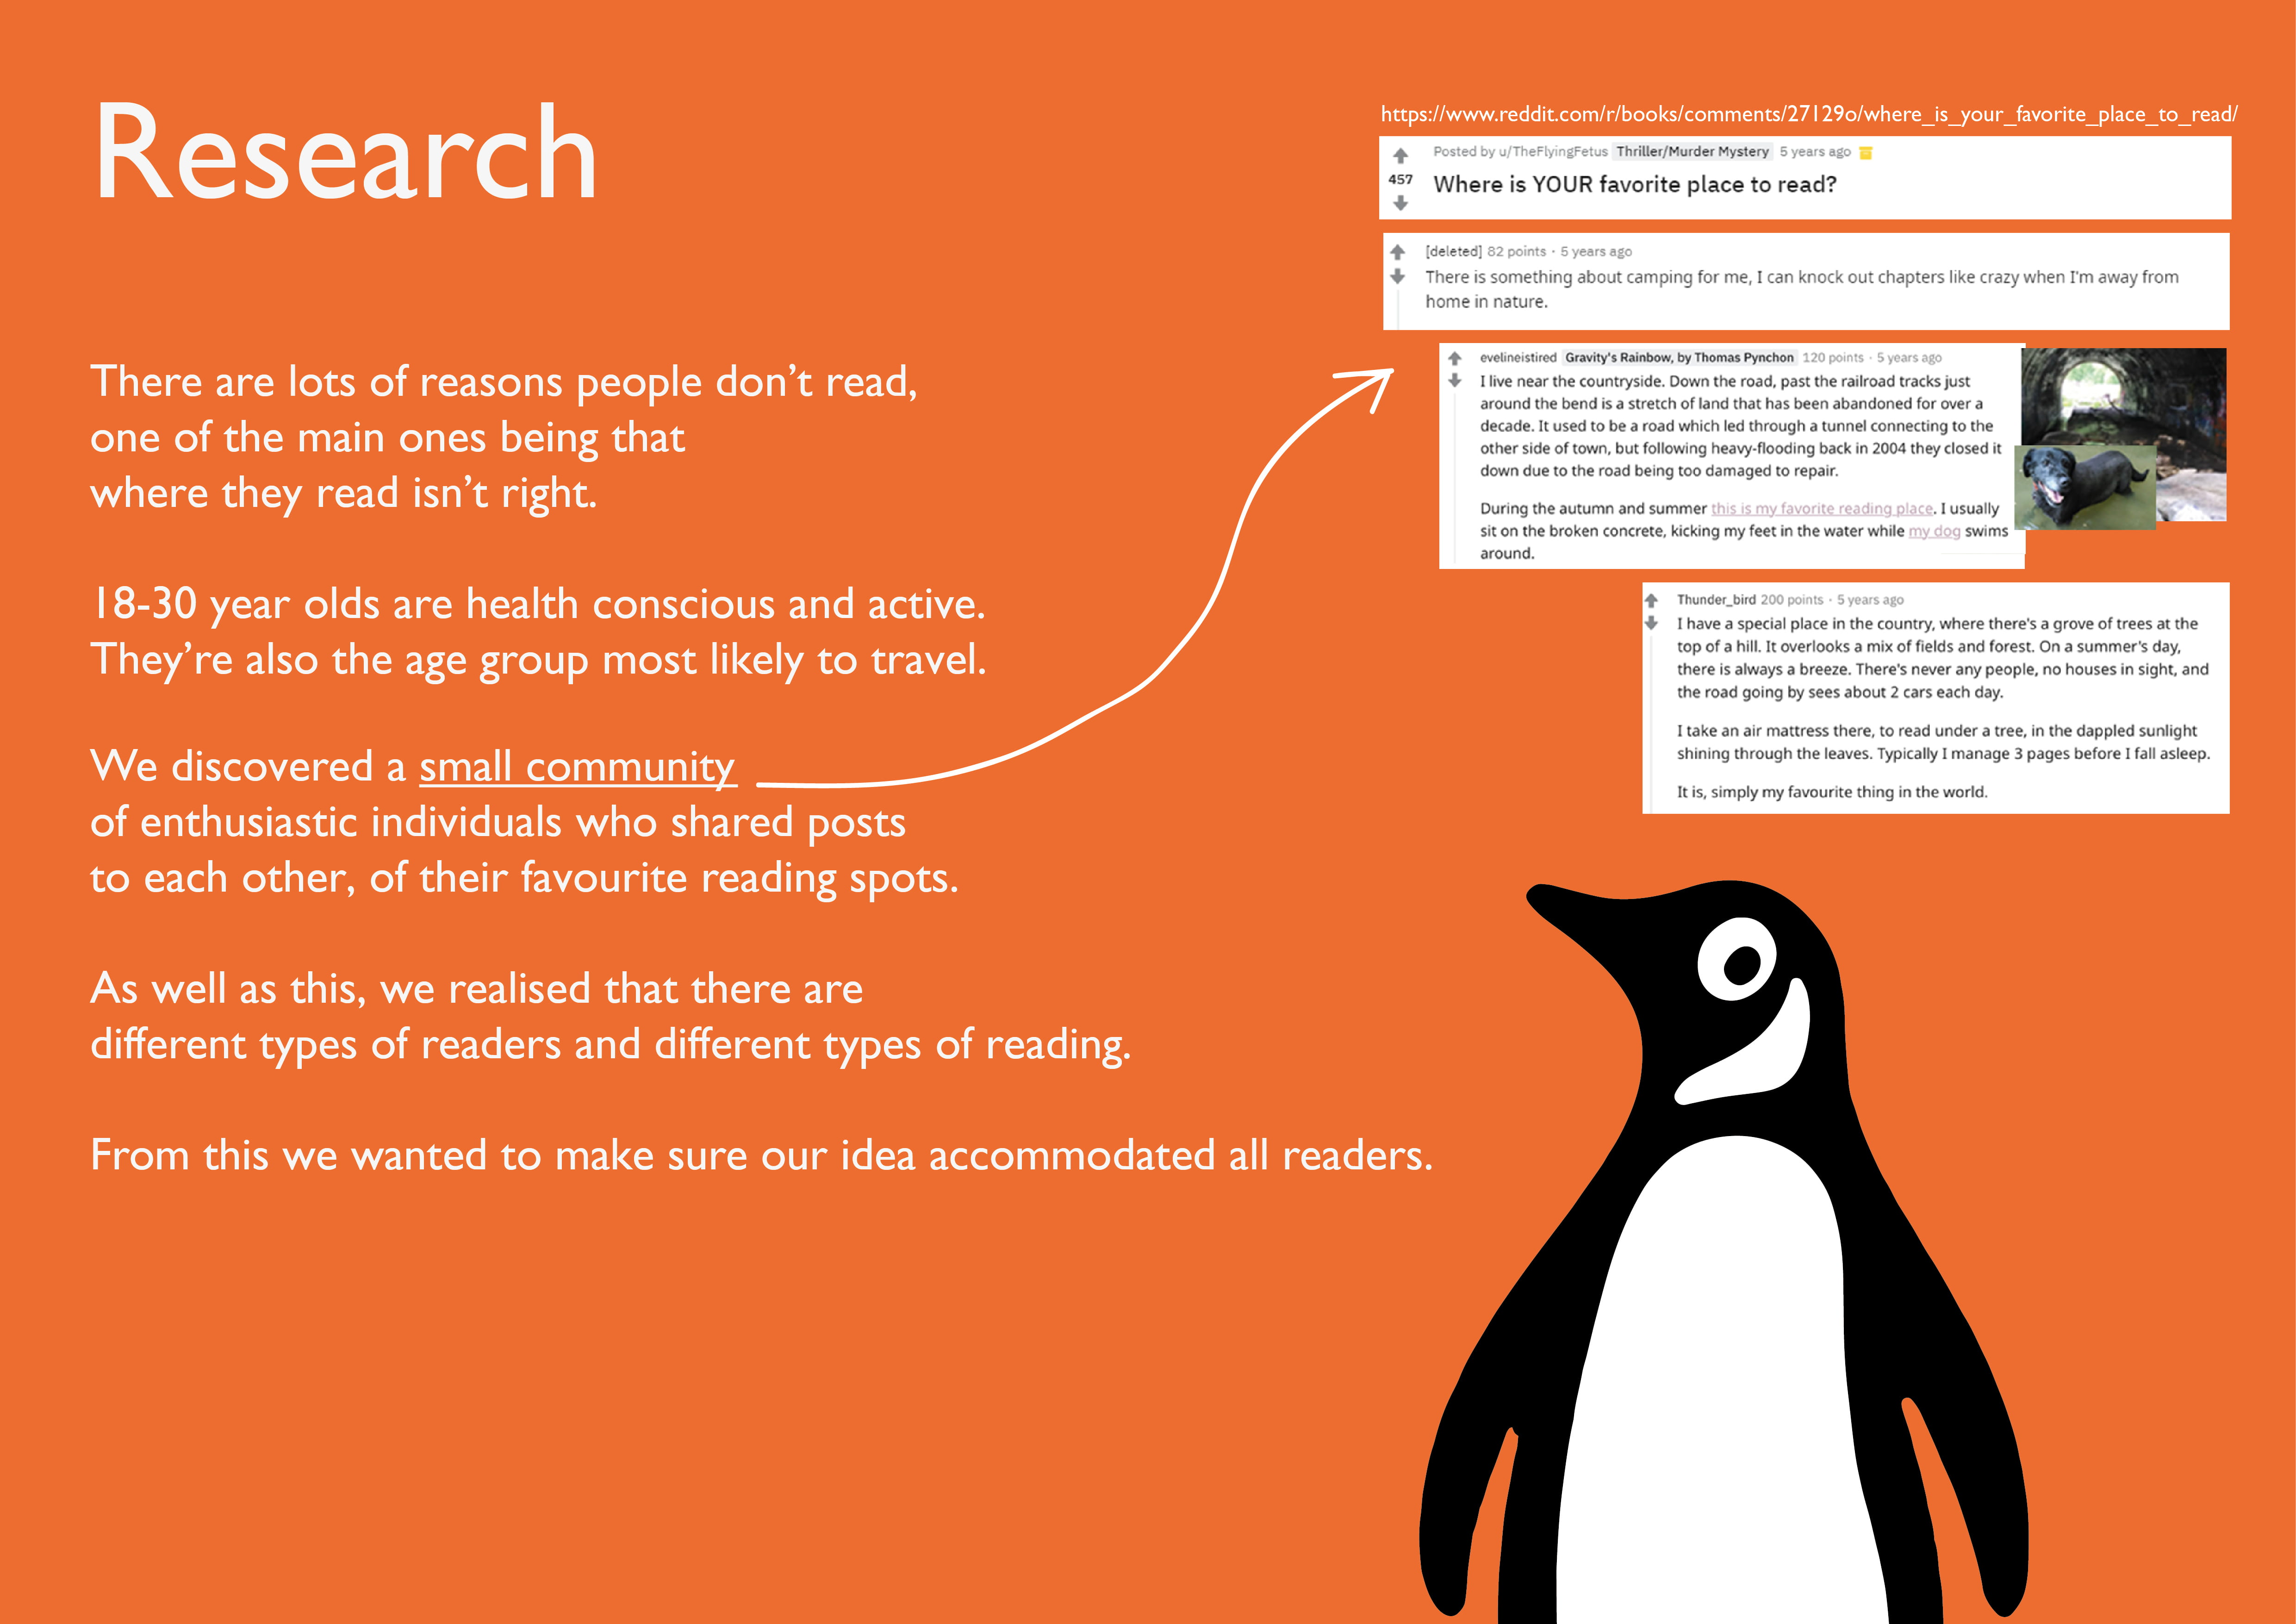 Research poster with concept of idea on orange background with Penguin logo.